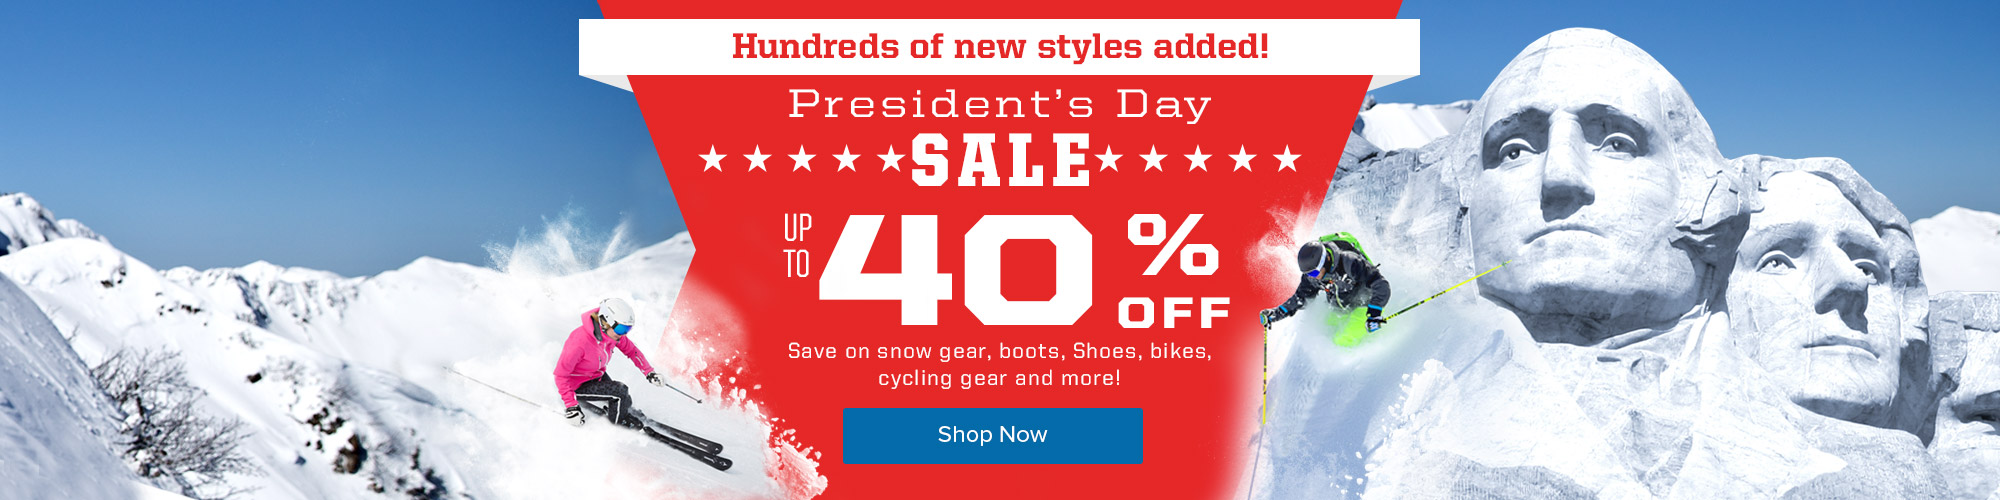 Presidents Day Sale - Up to 40% Off